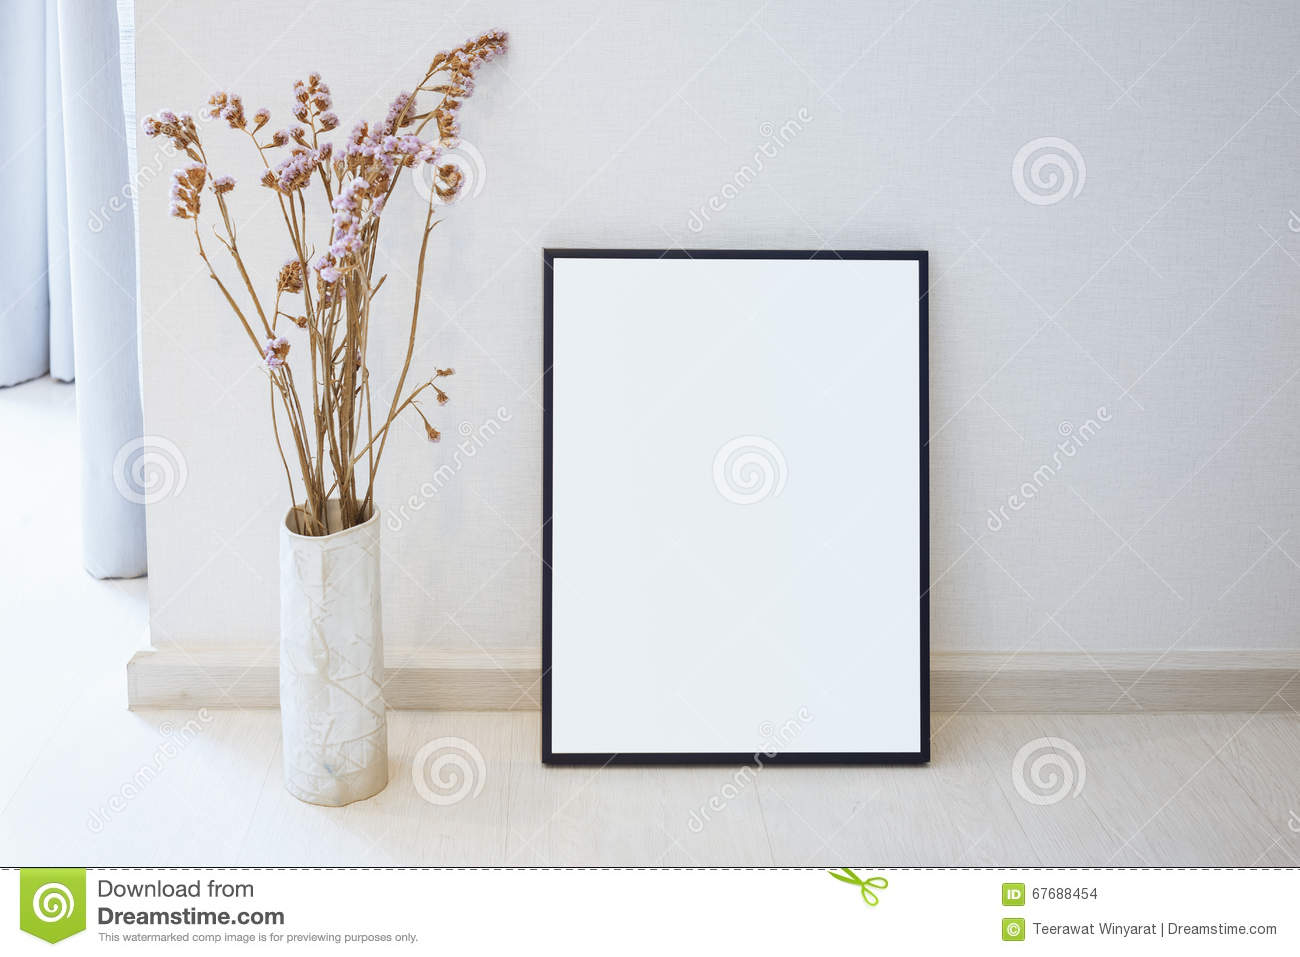 Mock up blank photo frame on floor home interior decoration stock photo image 67688454 - Deco moderne binnenmuur ...